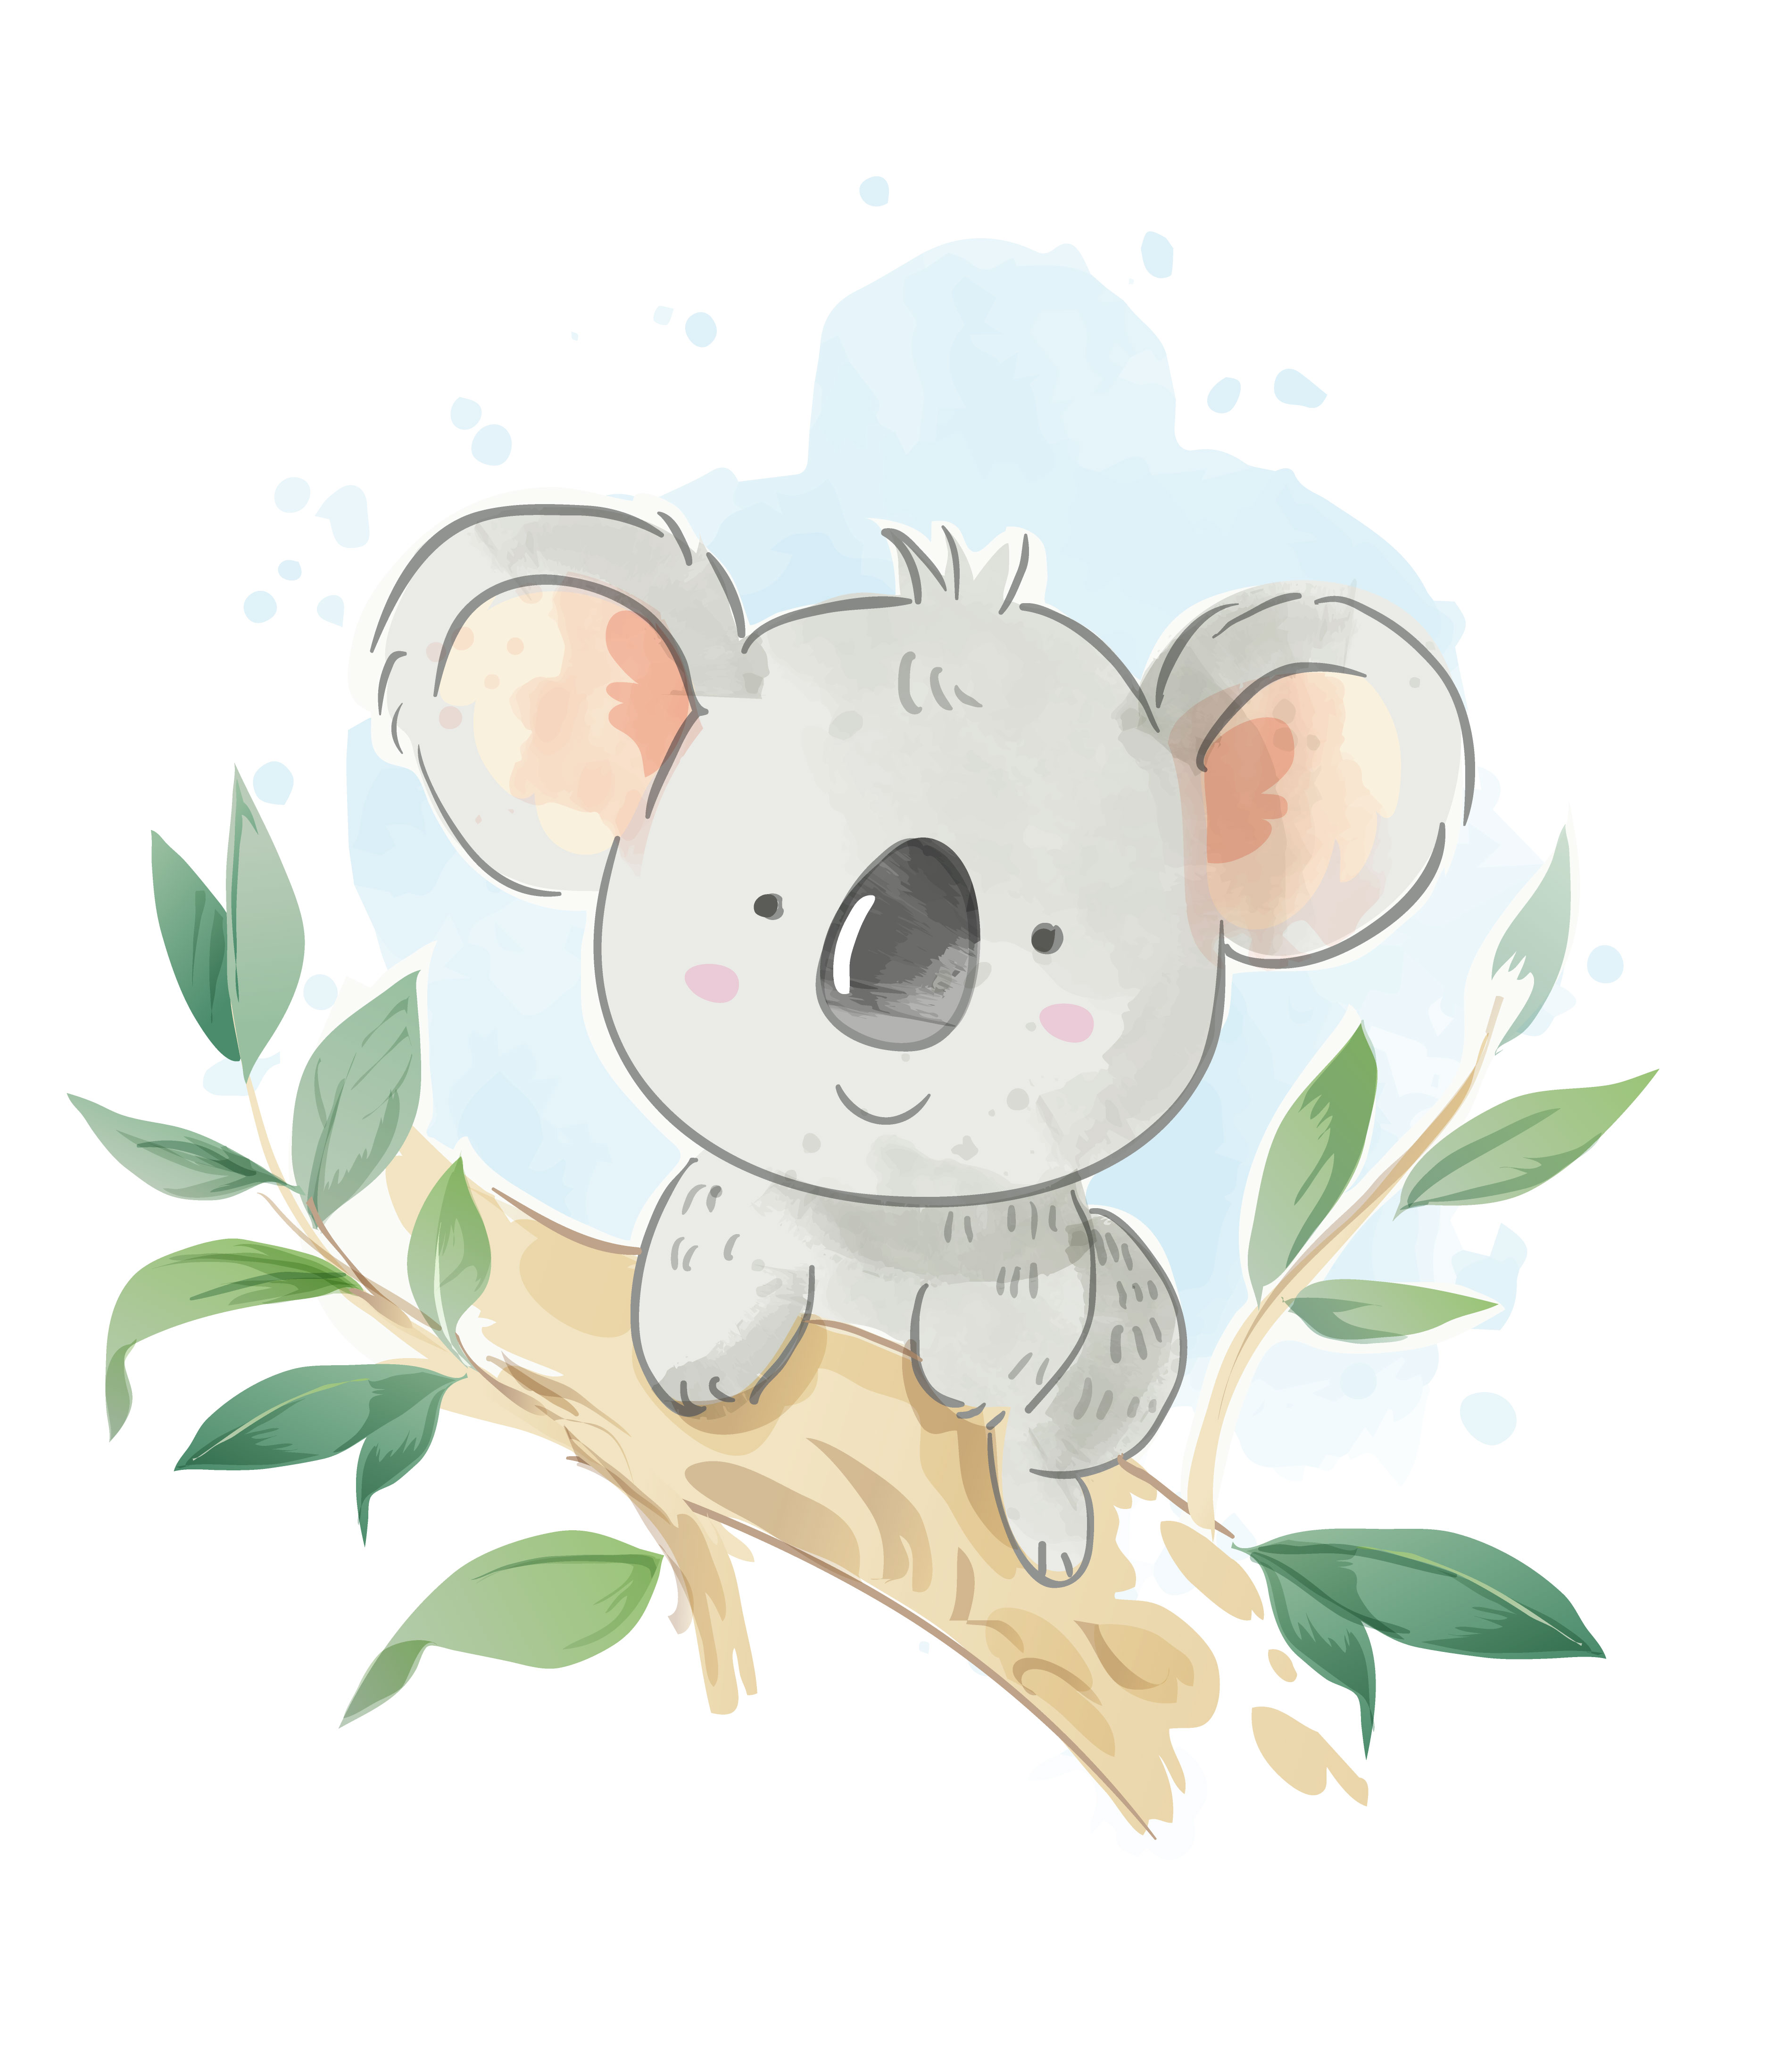 Cartoon Koala Sitting On The Tree Branch Illustration Download Free Vectors Clipart Graphics Vector Art I had to google it to make sure of what they. vecteezy